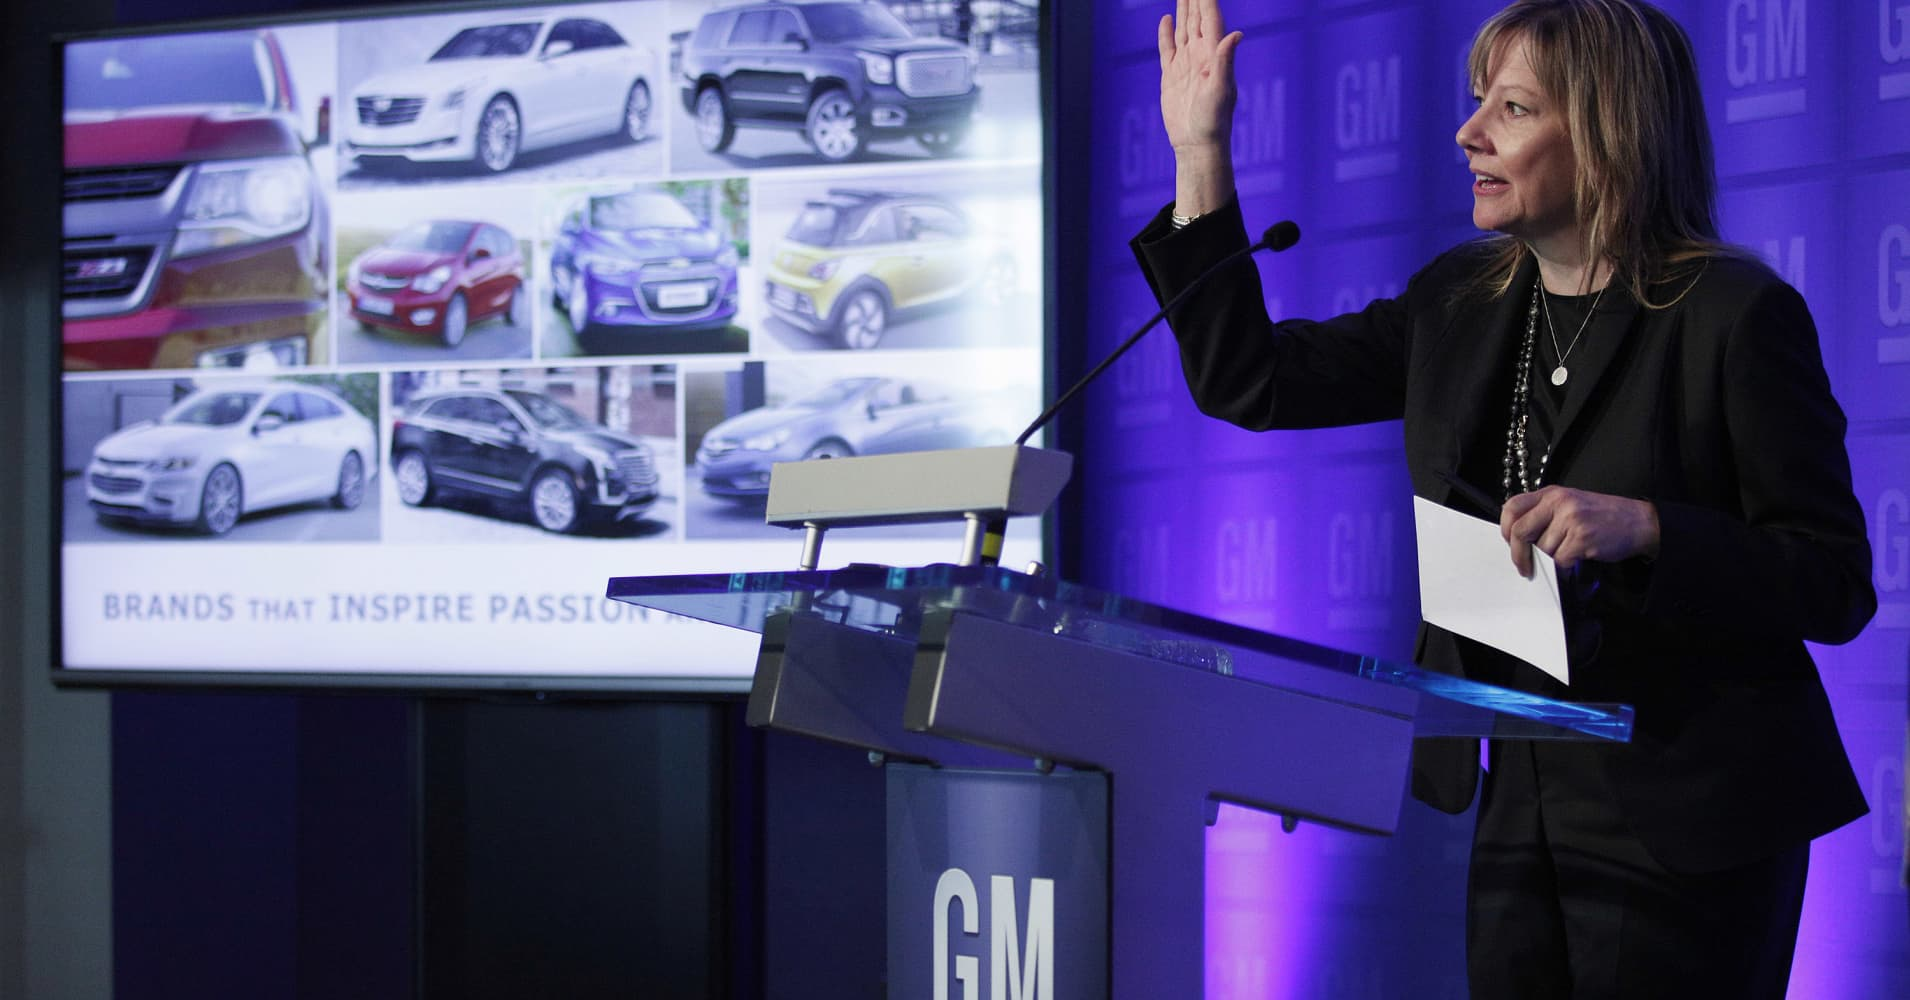 GM's $1 billion investment is not driven by Trump and likely dates back to 2014